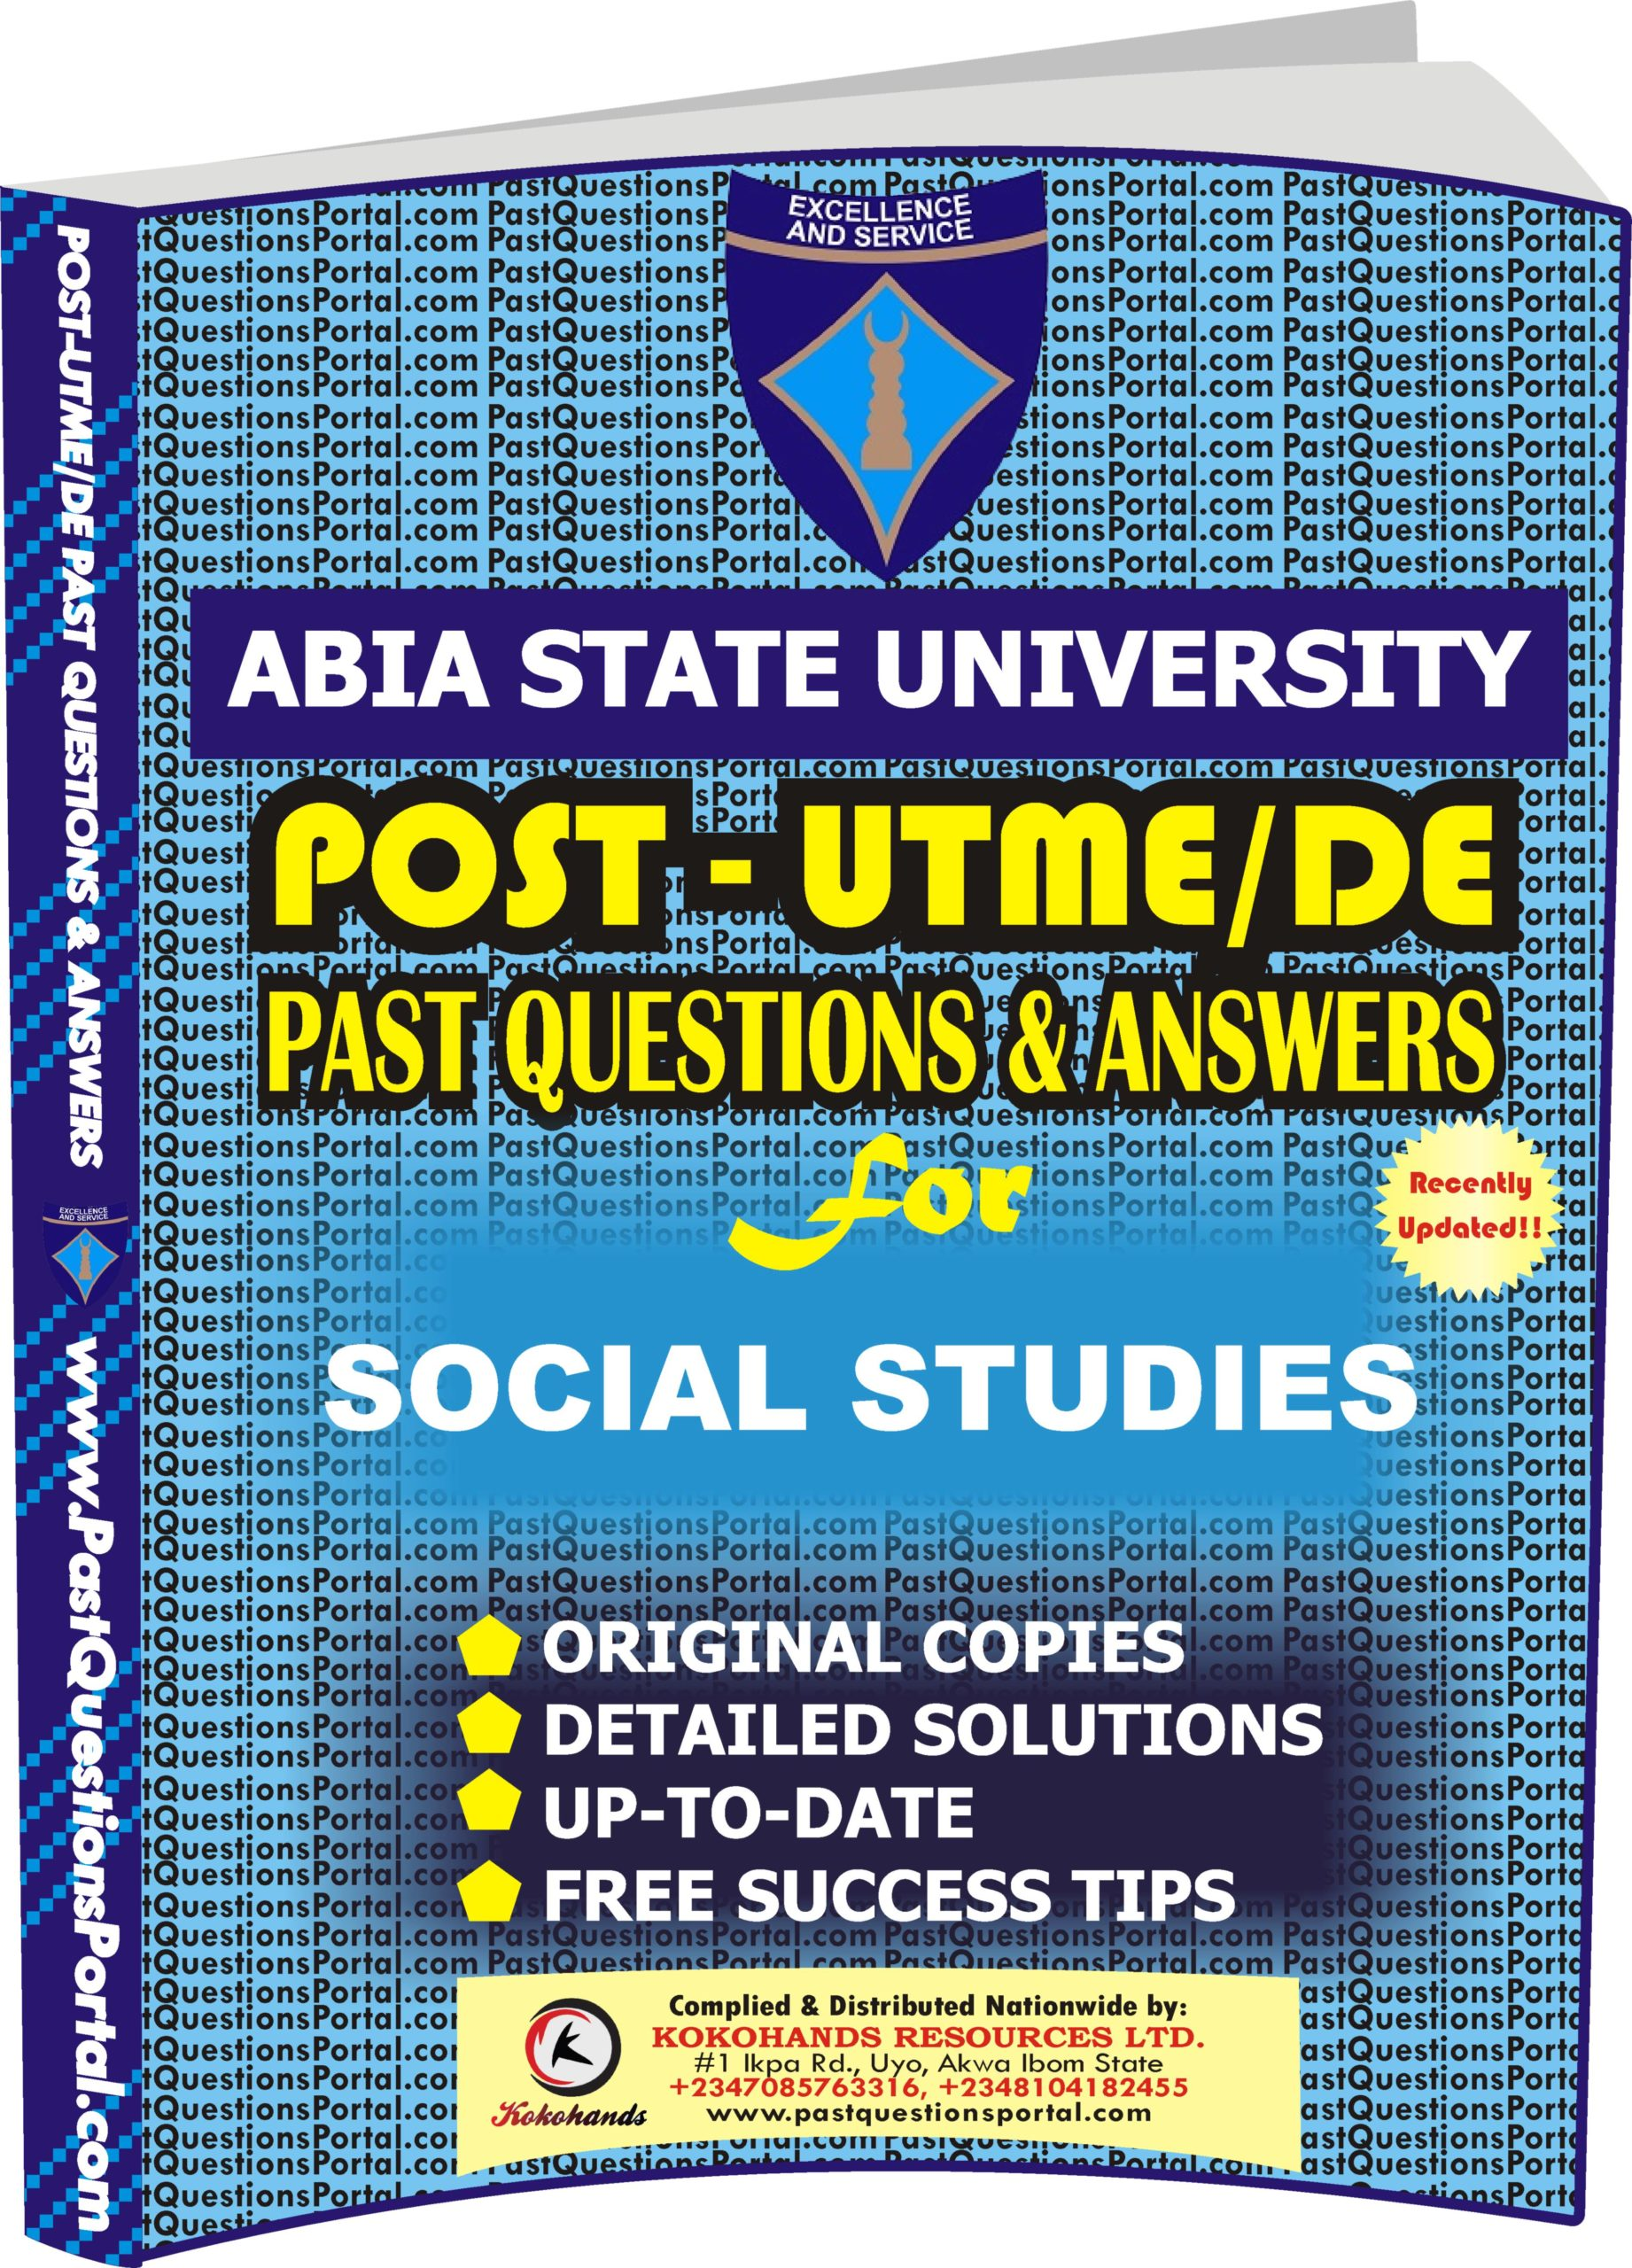 ABSU Post UTME Past Questions for SOCIAL STUDIES